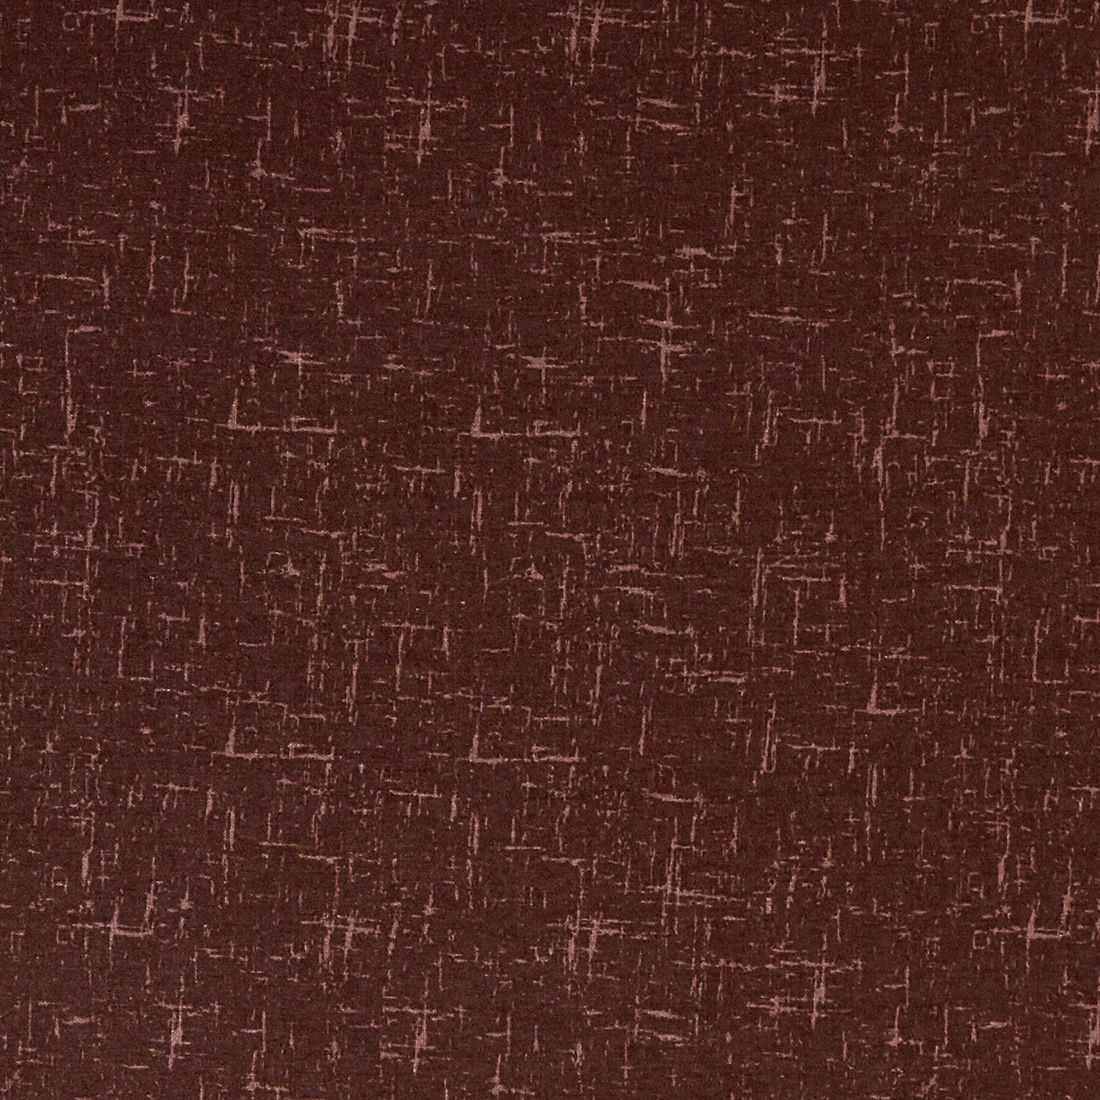 Cotton Blenders Brown Craft Fabric